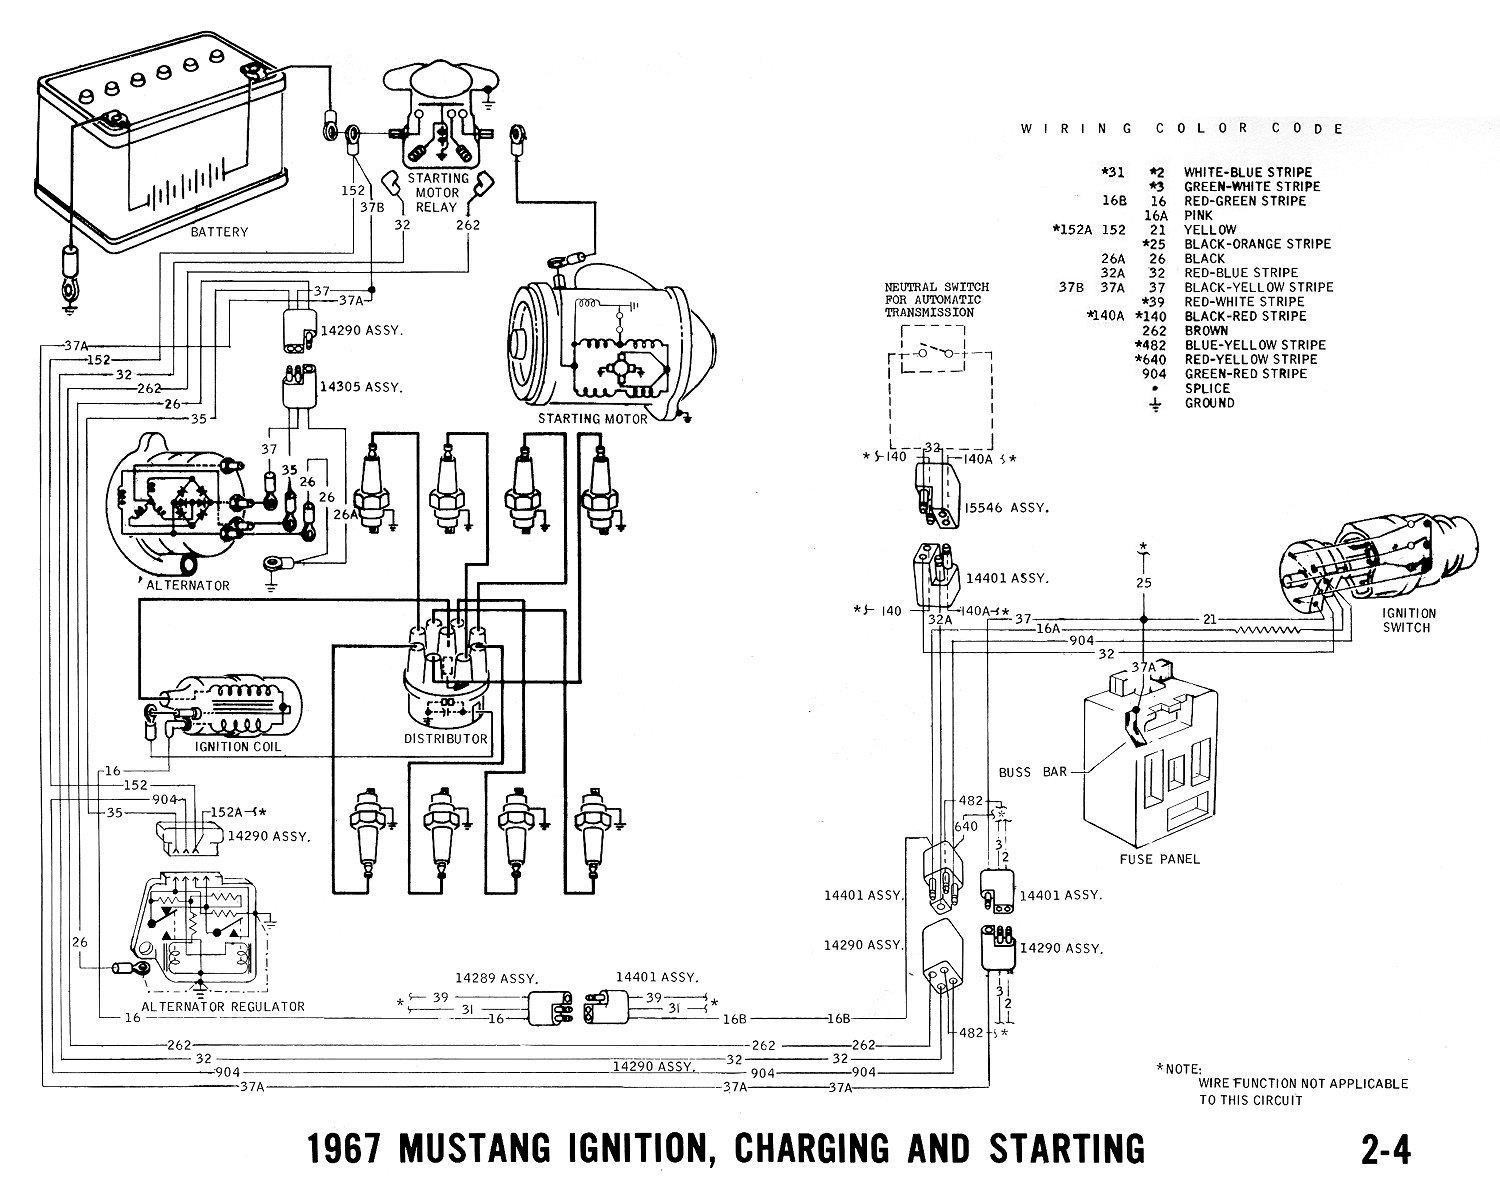 67 mustang wiring diagram elegant wiring 1967 ford mustang alternator diagrams starting pleasing of 67 mustang wiring diagram 67 mustang ammeter wiring diagram wiring diagram data